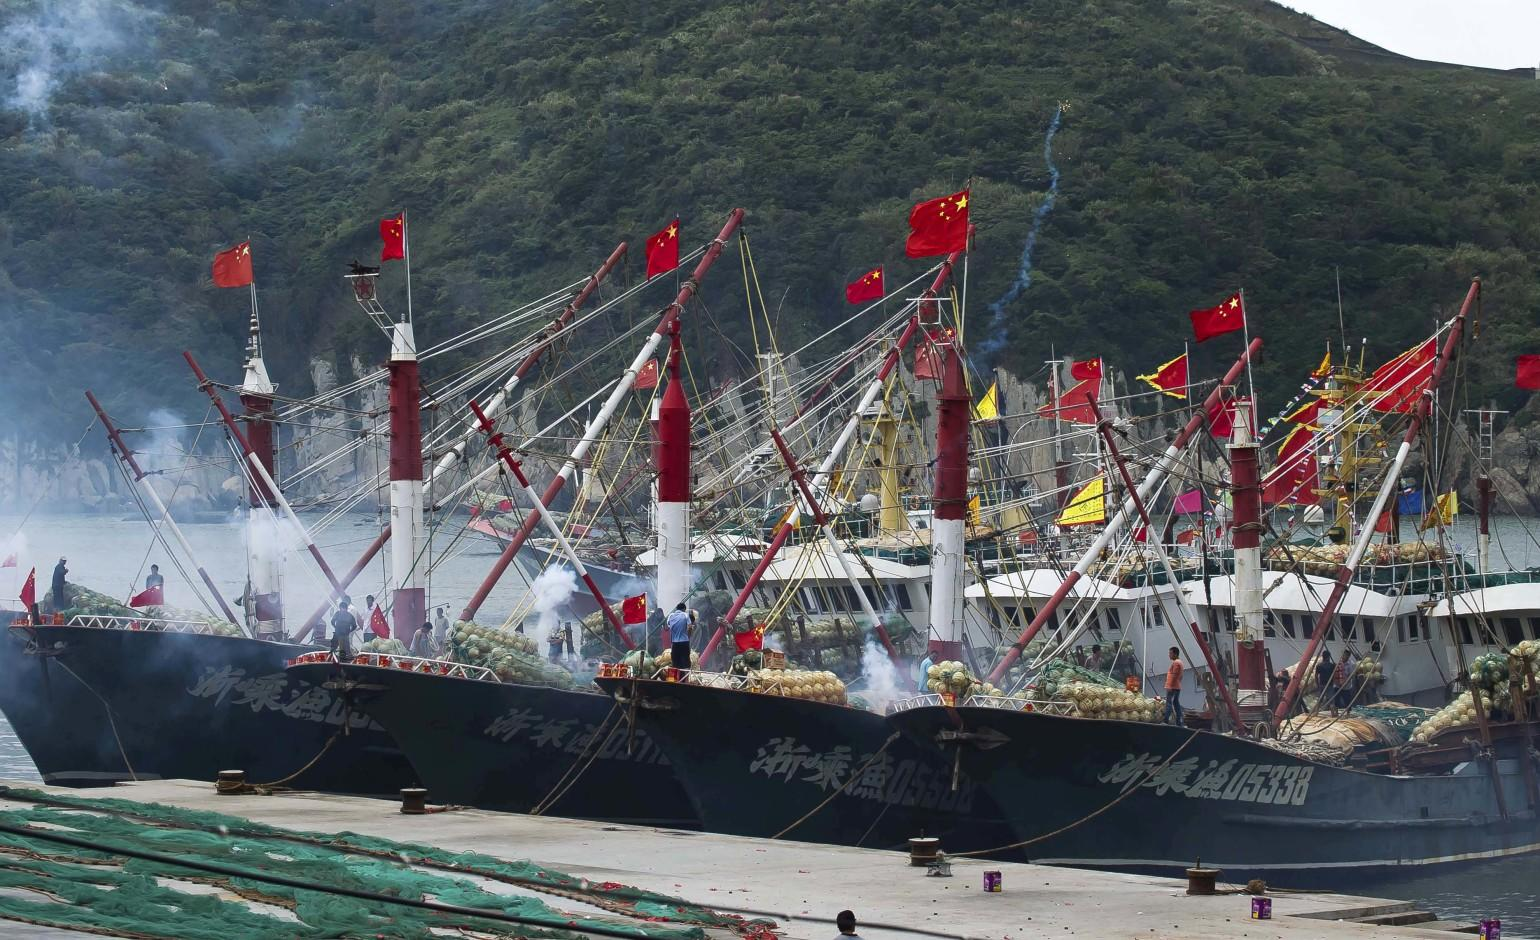 China's maritime fleet uses predatory fishing practices to feast on smaller countries